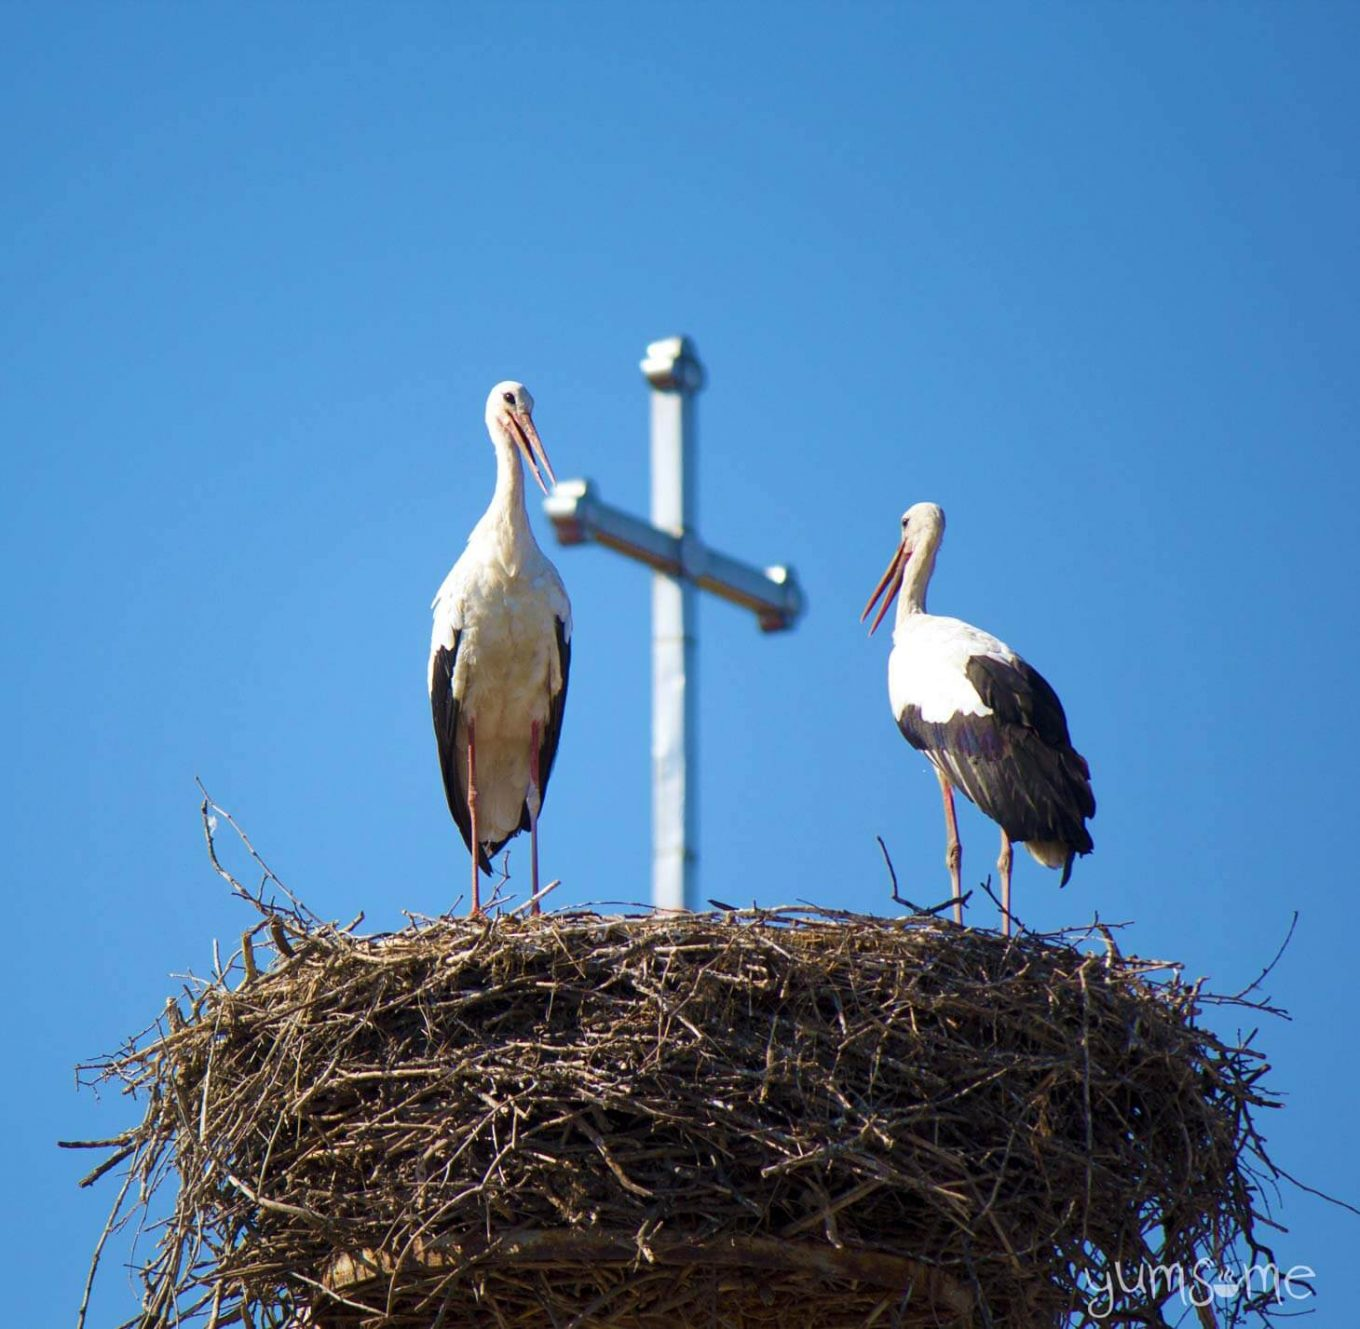 Romania is full of storks, like these ones outside a church | ©2016 yumsome.com